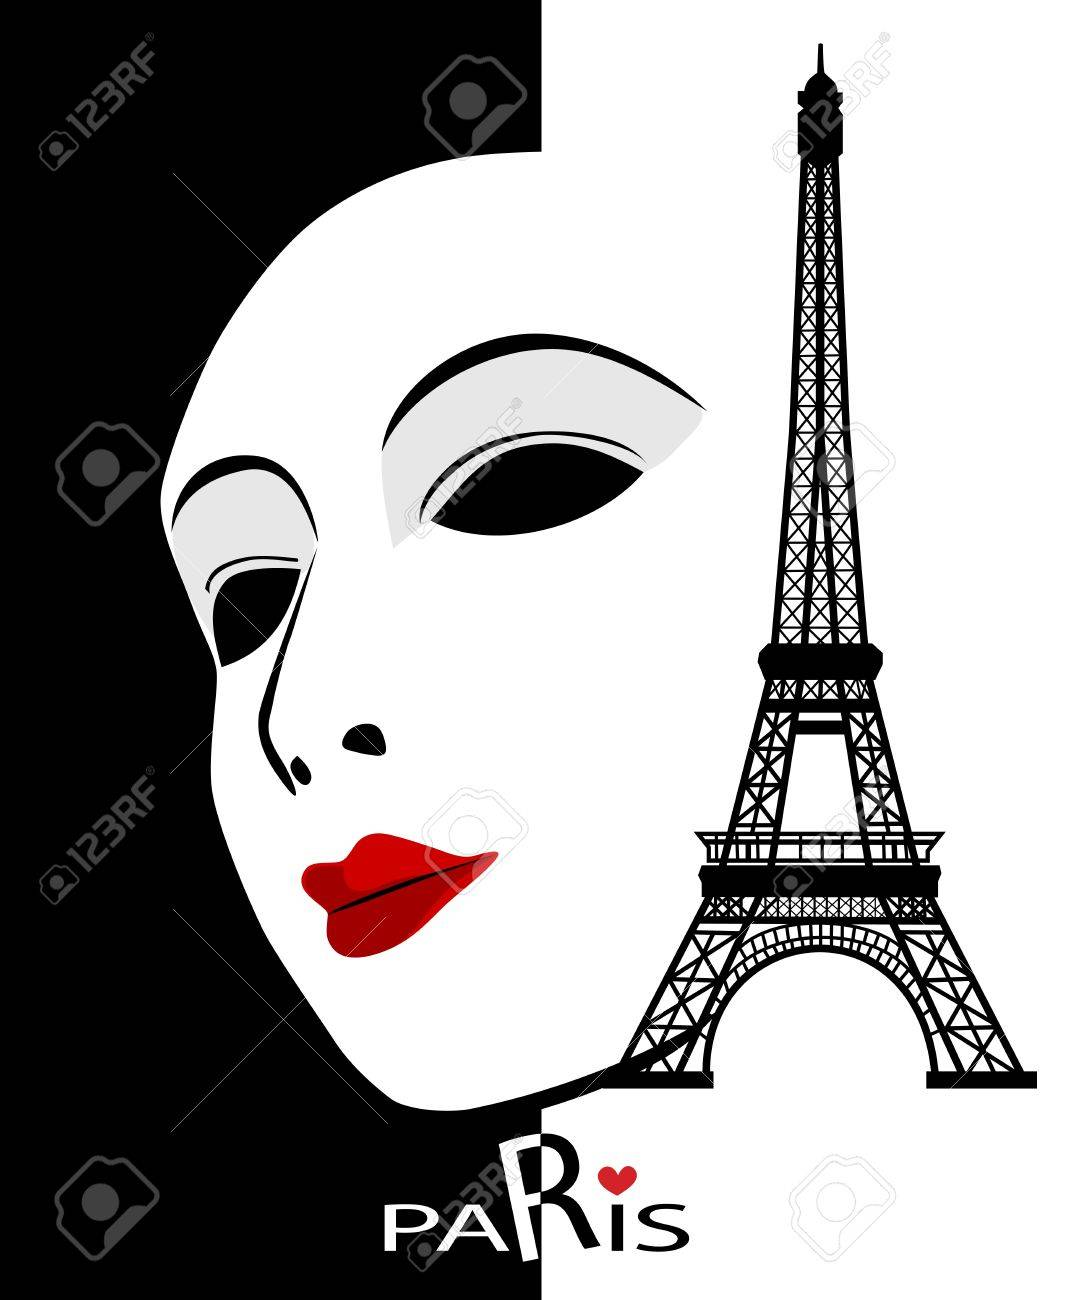 Paris cards as symbol love and romance travel Stock Vector - 18030971